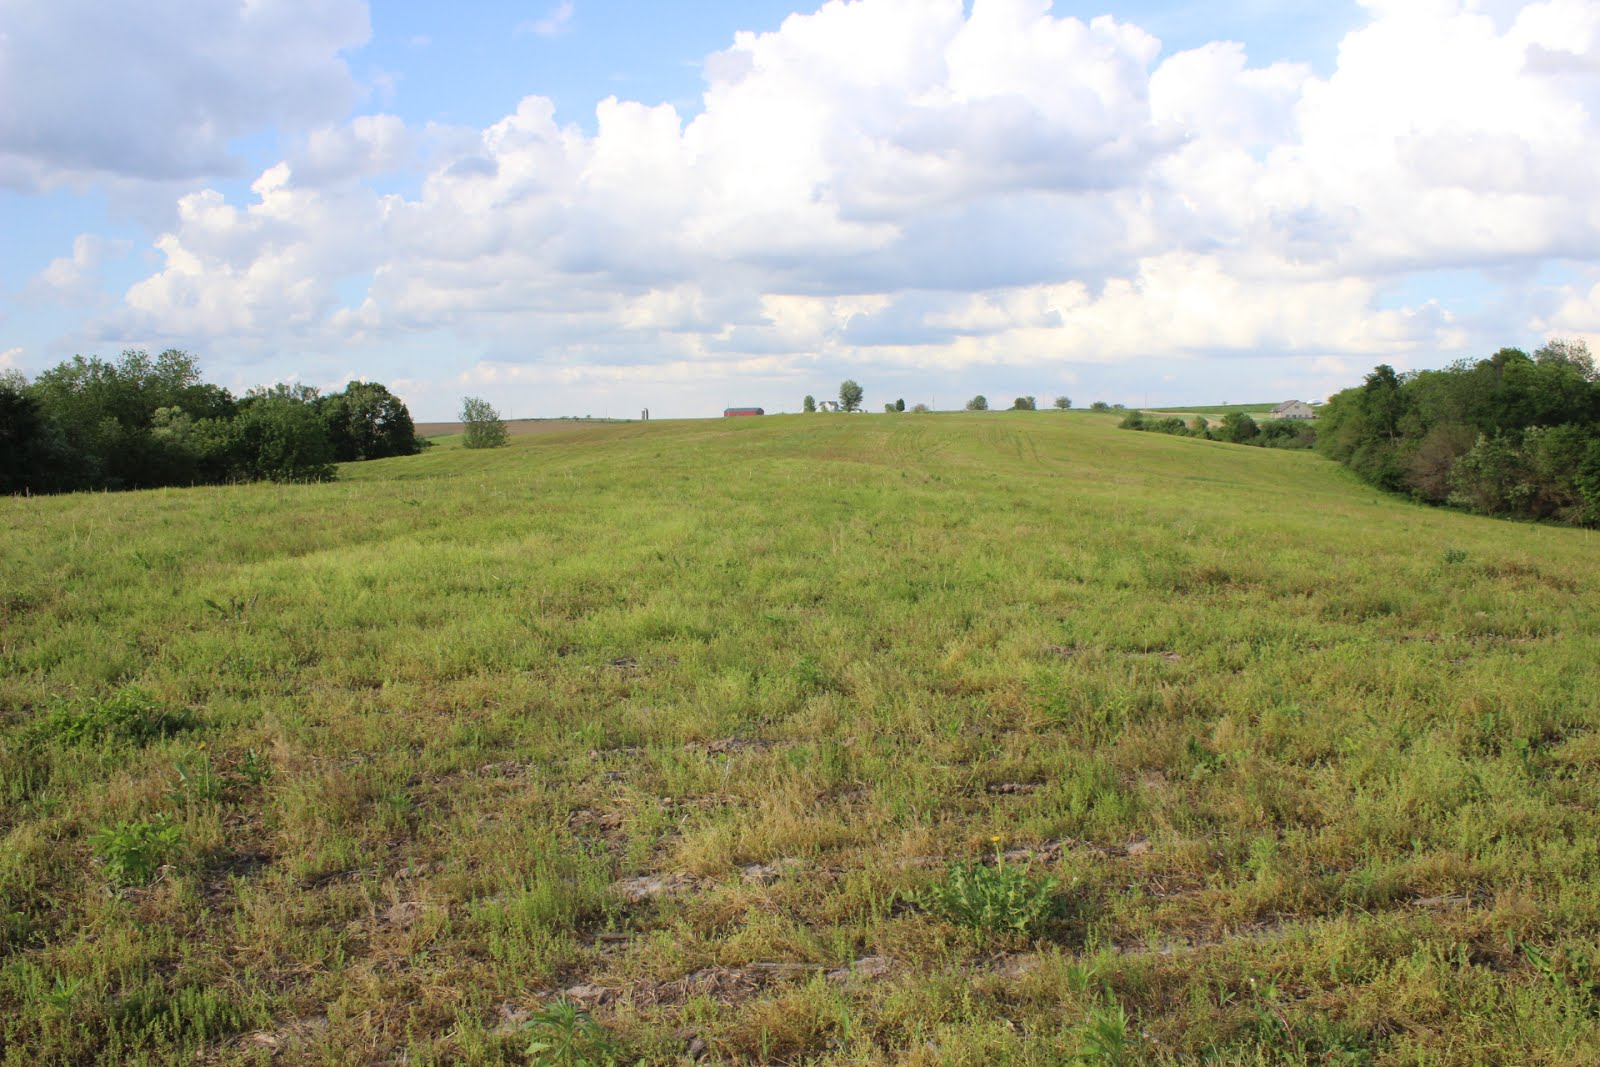 183.59 Acres, Section 6, Washington Township, Jackson County PENDING